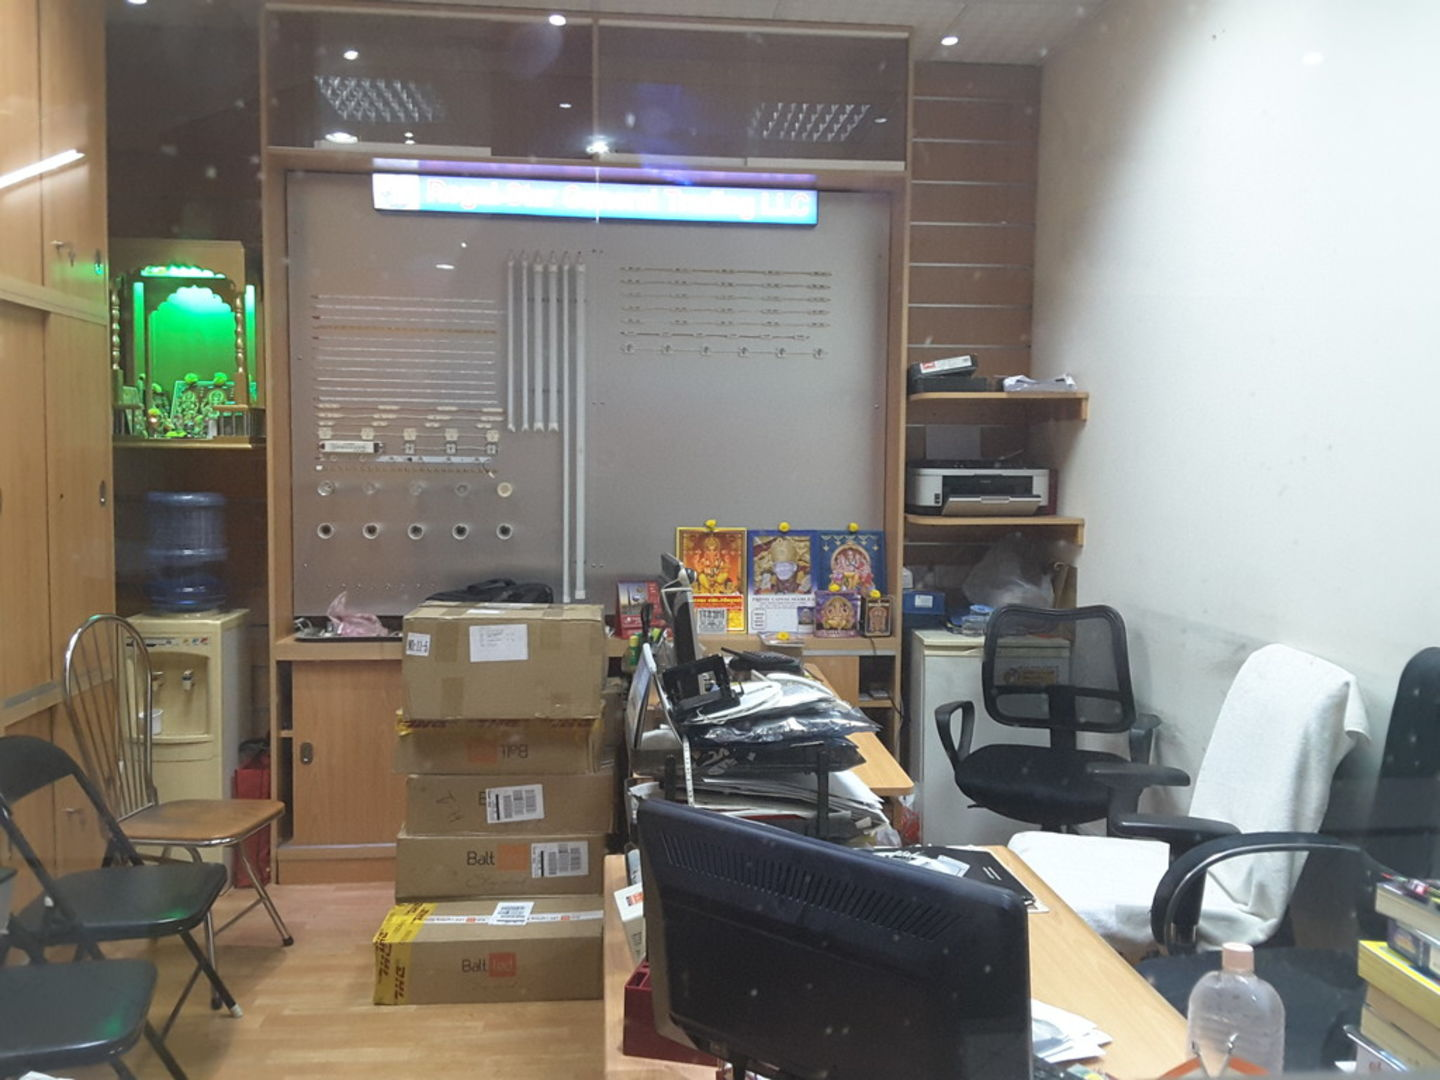 HiDubai-business-regal-star-general-trading-shopping-consumer-electronics-al-raffa-al-raffa-dubai-2